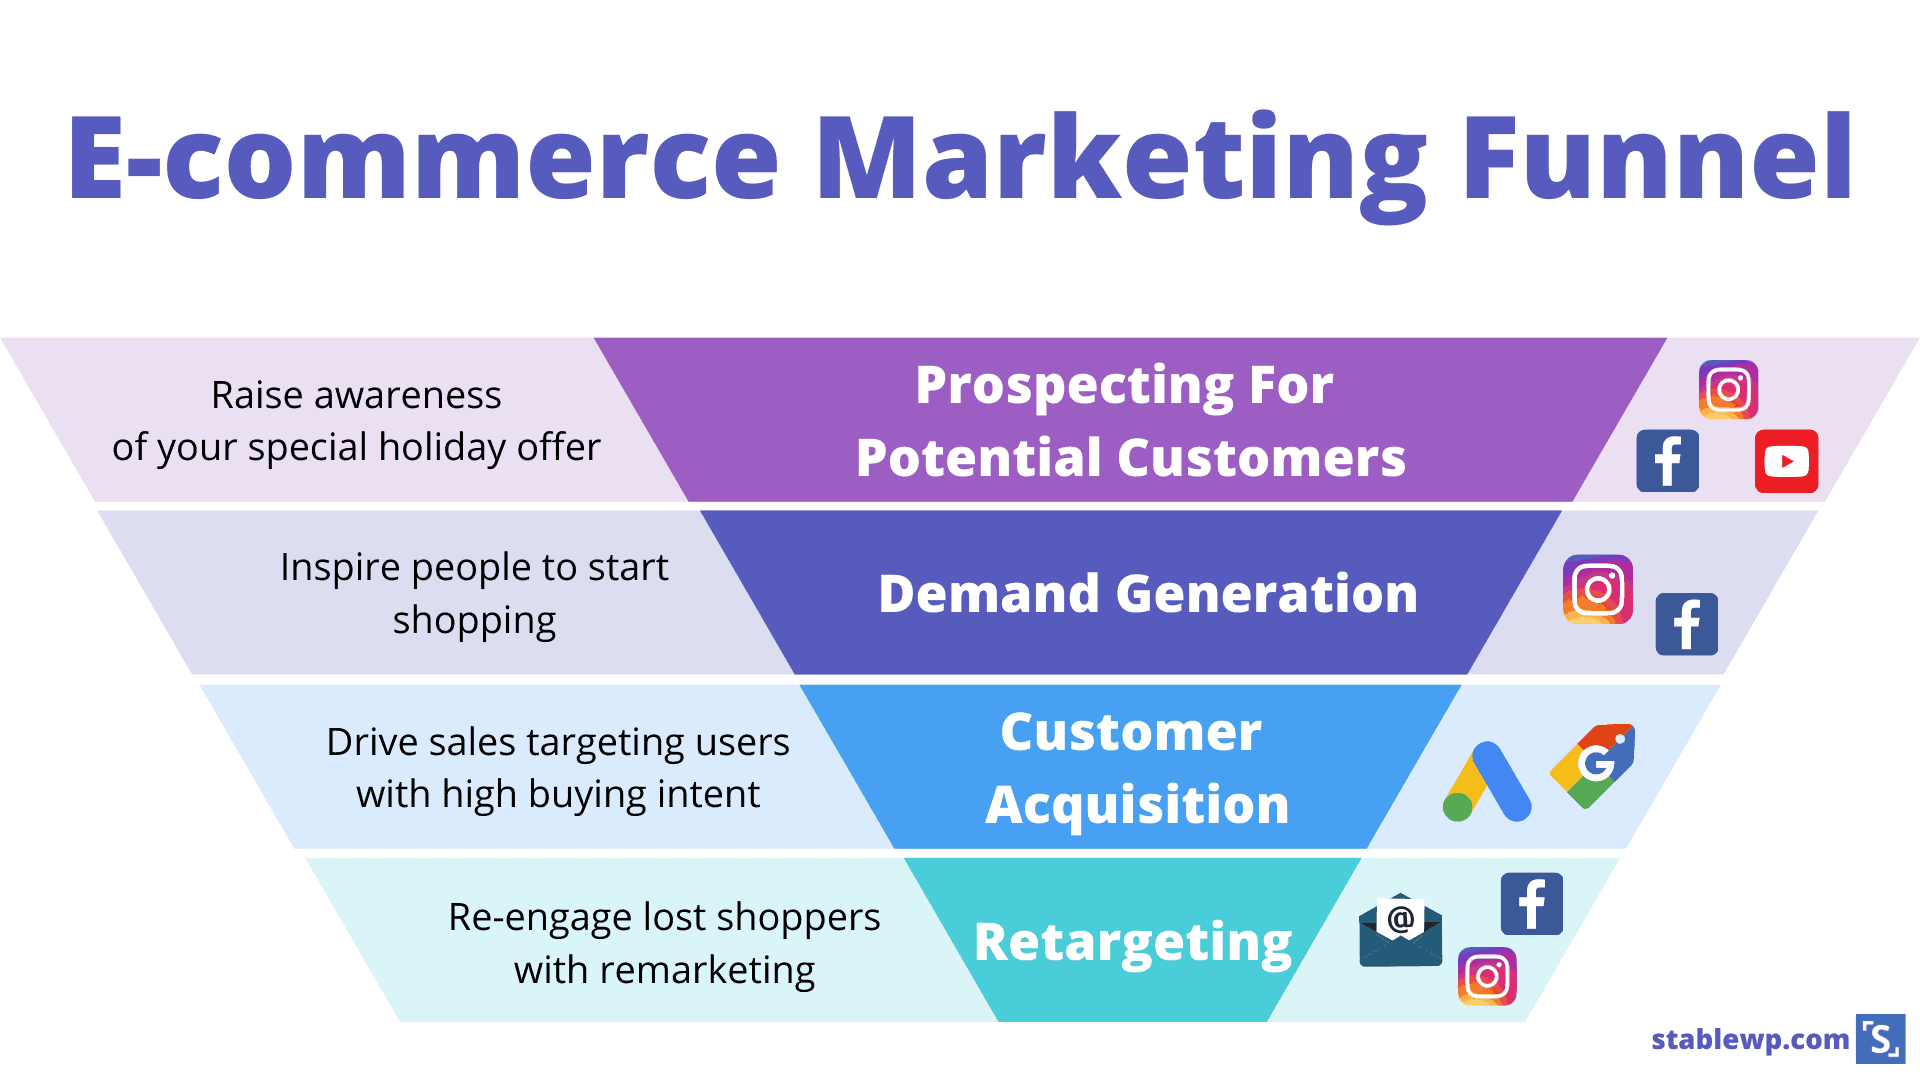 e-commerce marketing funnel using paid ads on facebook, instagram youtube and google to capture new shoppers at various stages of the buying journey